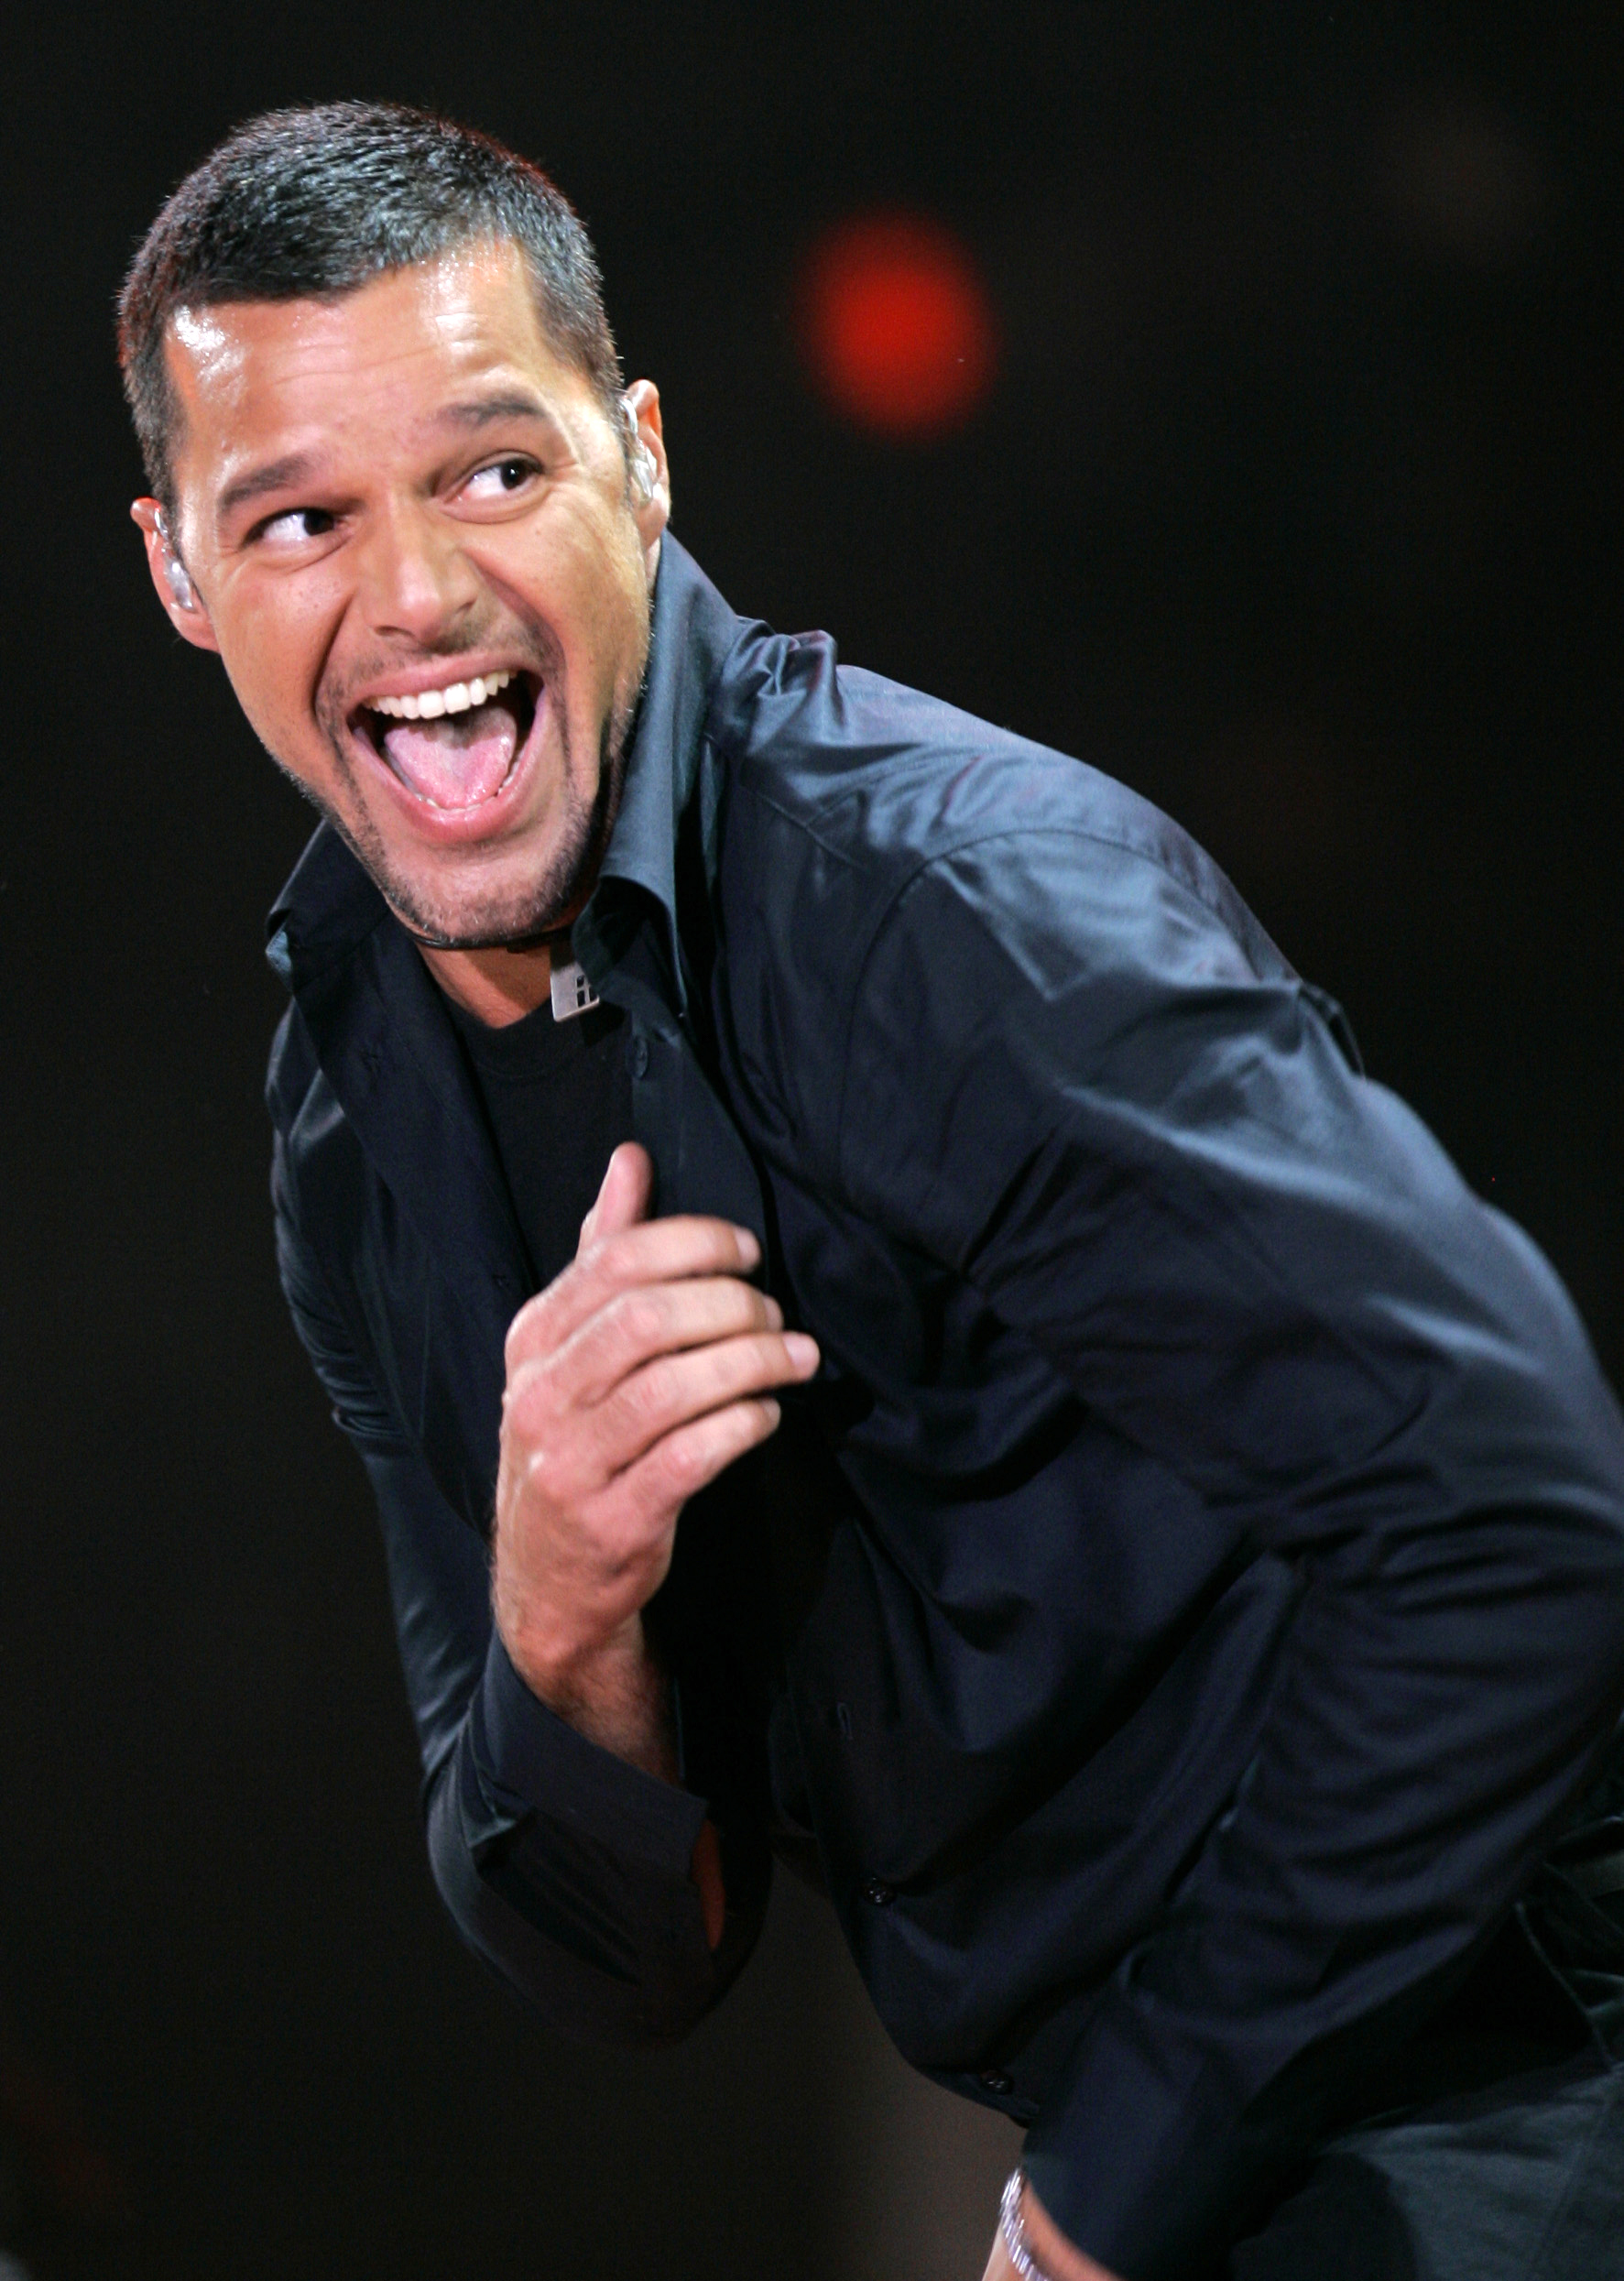 In this May 2008 file photo, Ricky Martin, of Puerto Rico, dances during an ALAS, Latin America in Solidarity Action, concert in Mexico City, Mexico.